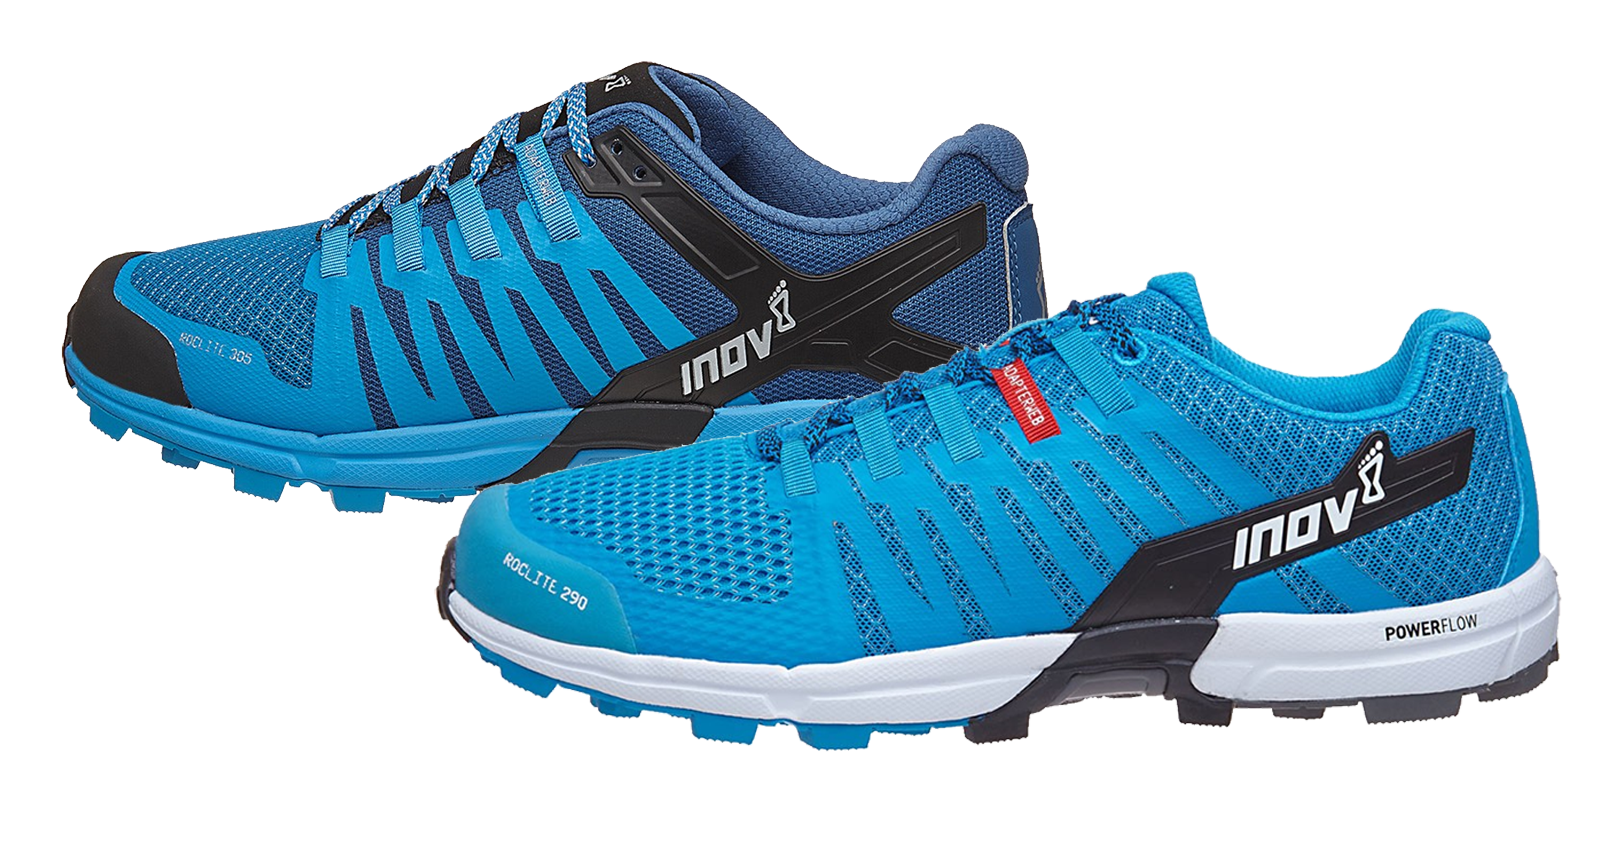 buy online 9032b 01a3d inov-8 Roclite 290 and Roclite 305 Performance Review ...